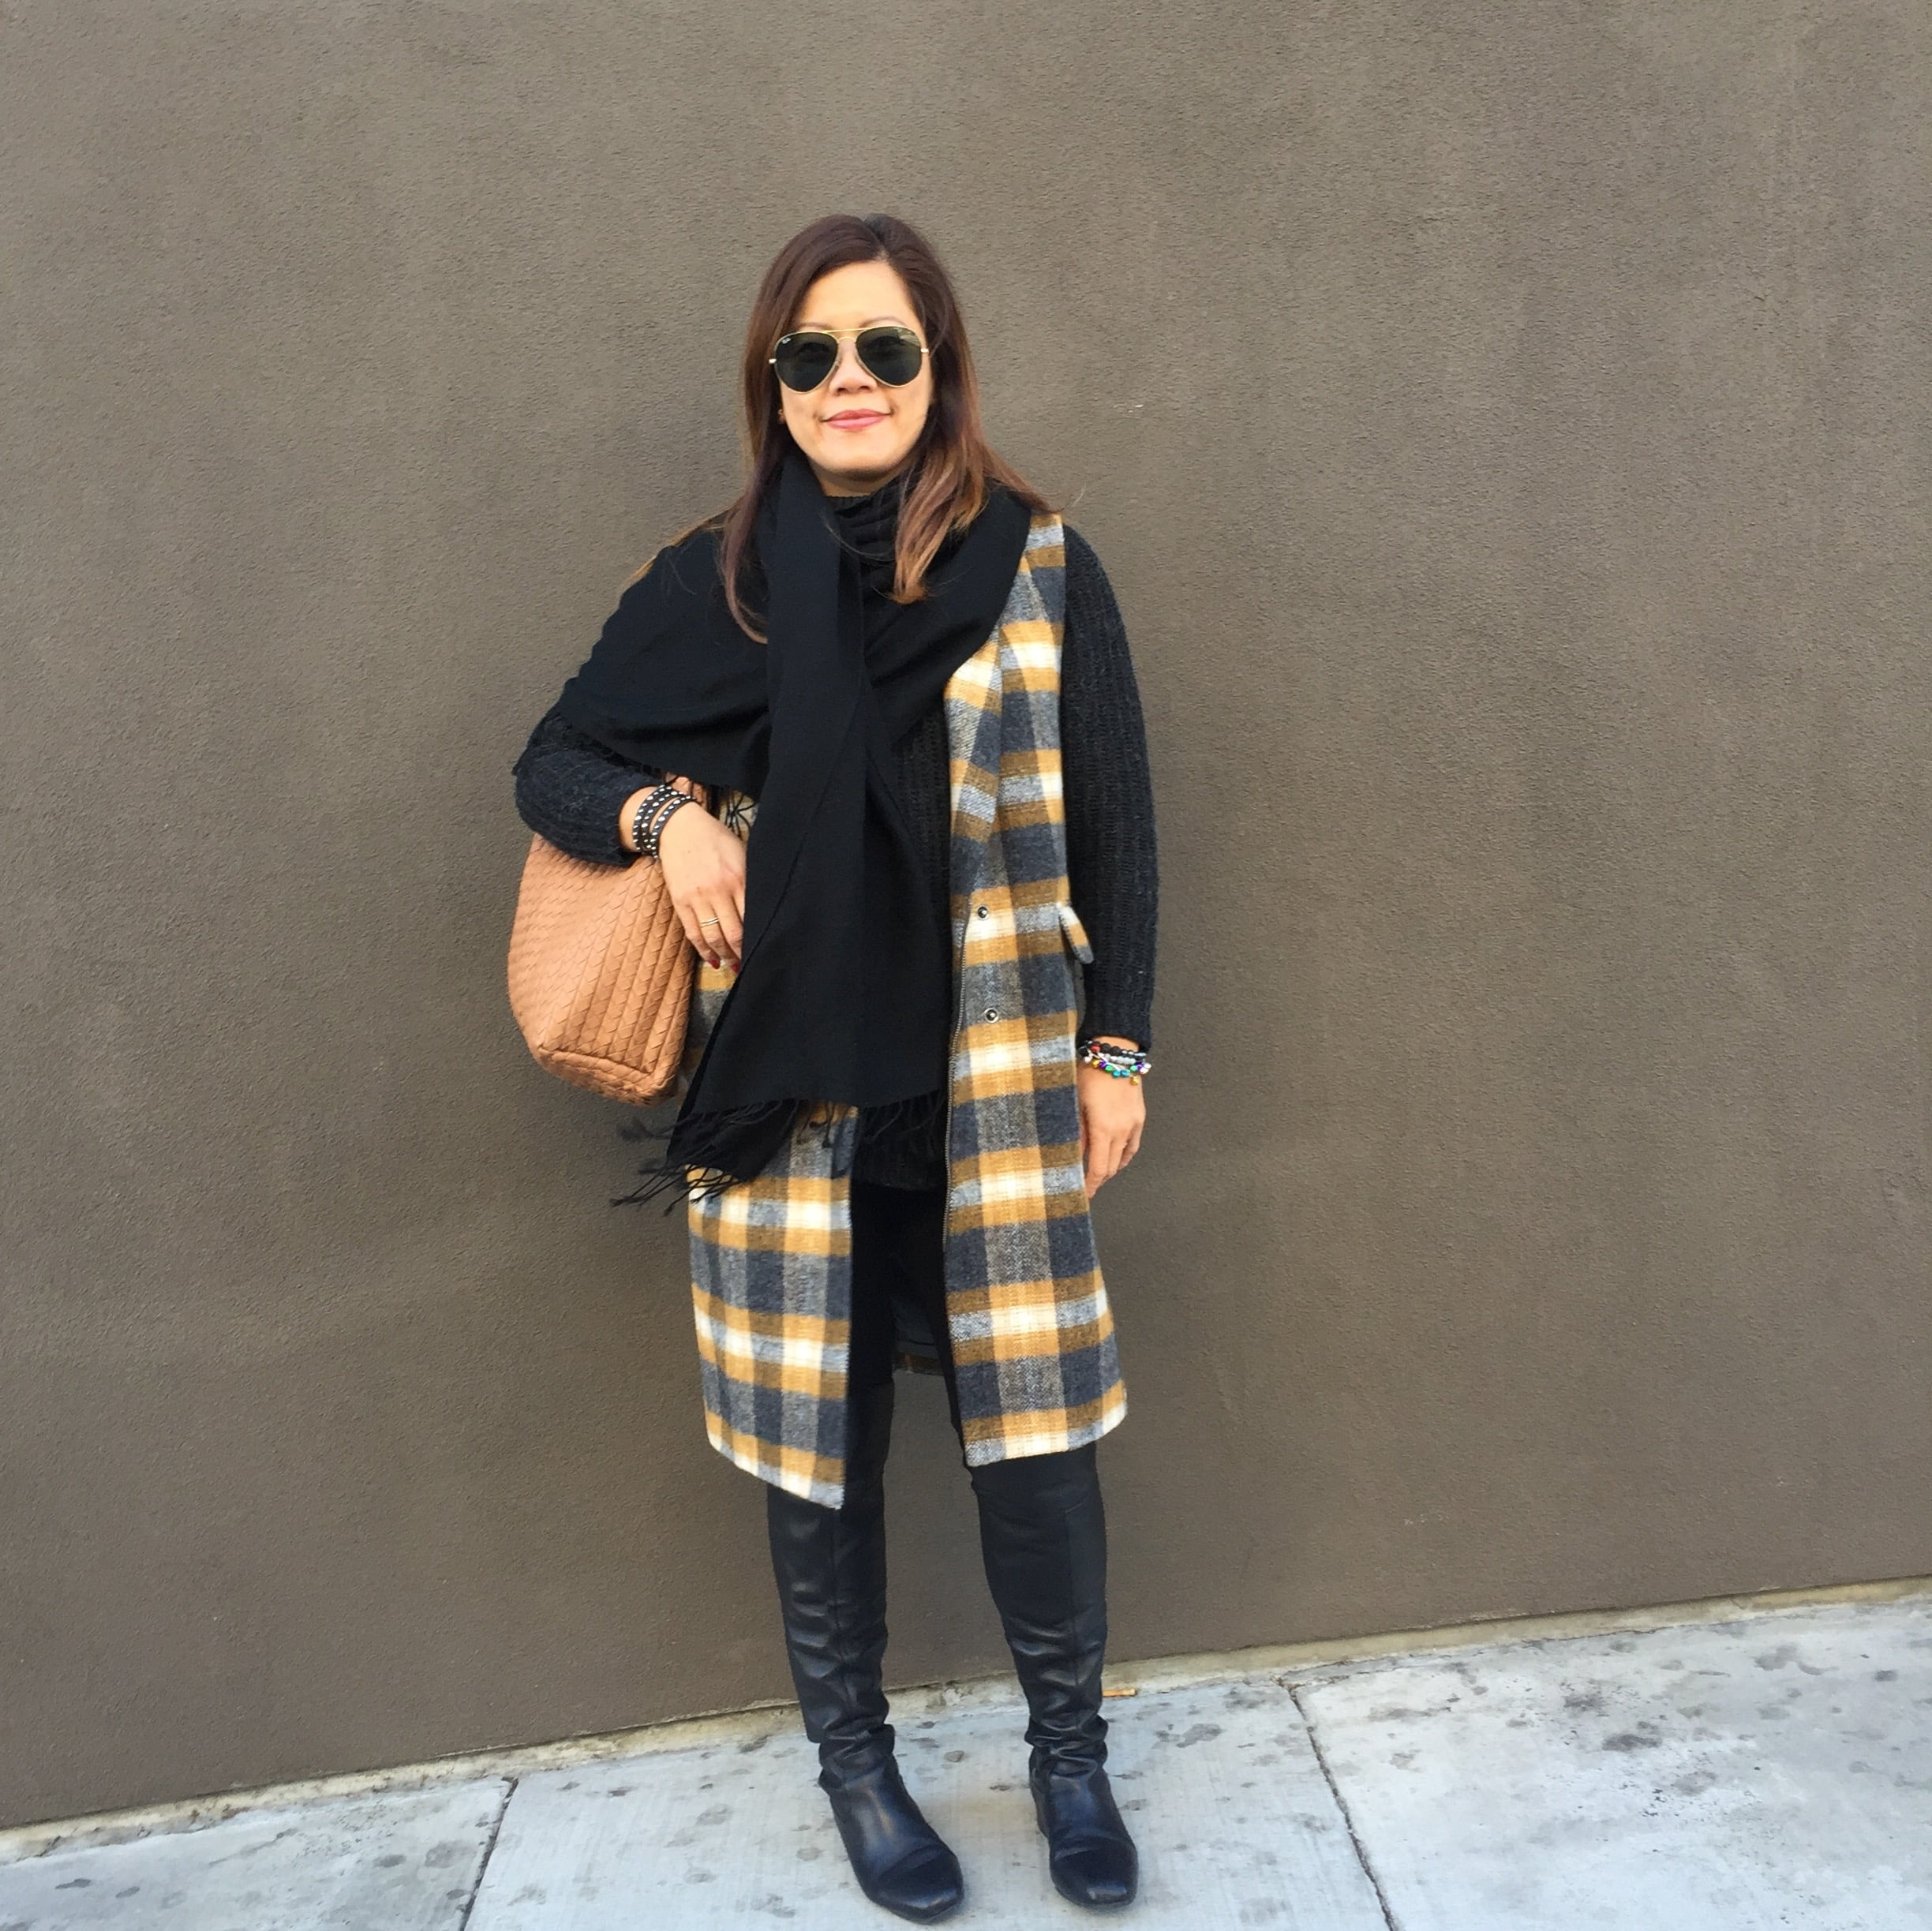 ANINE BING  knits - Madewell vest (similar  here ) - Nordstrom  OTK boots